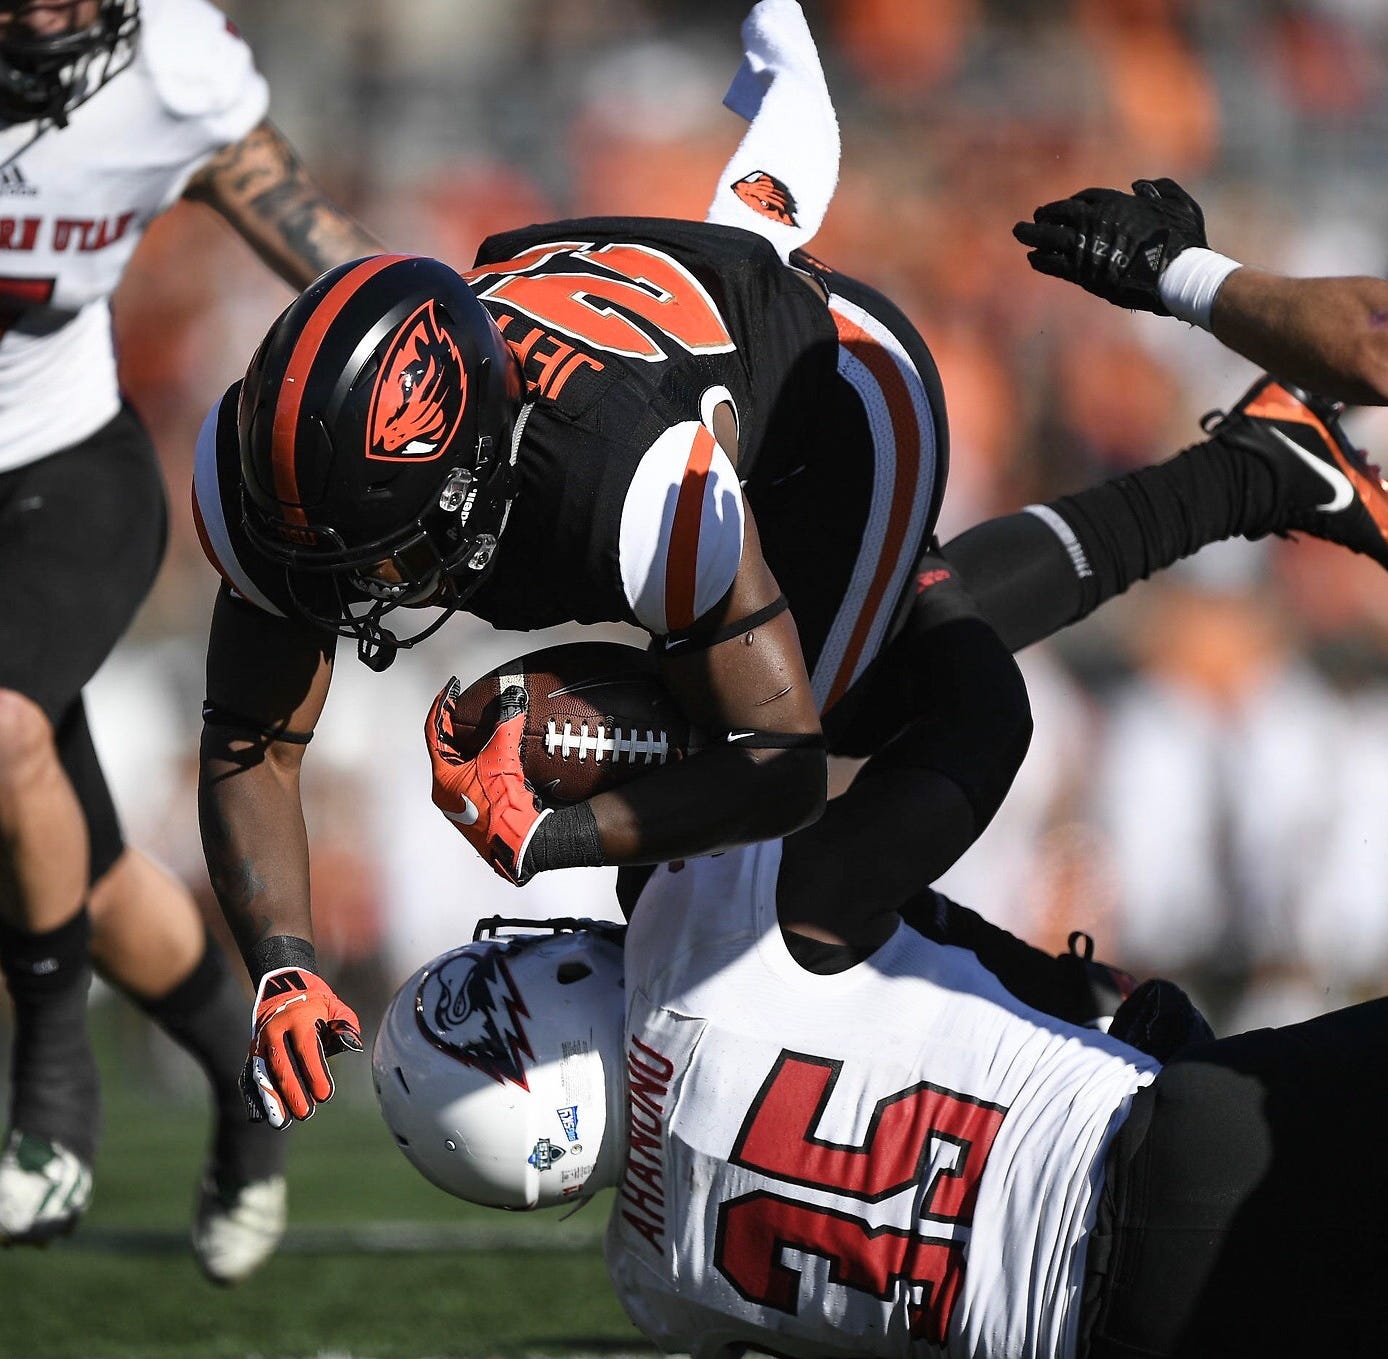 Live updates: Heartbreak for Oregon State in 37-35 loss at Nevada